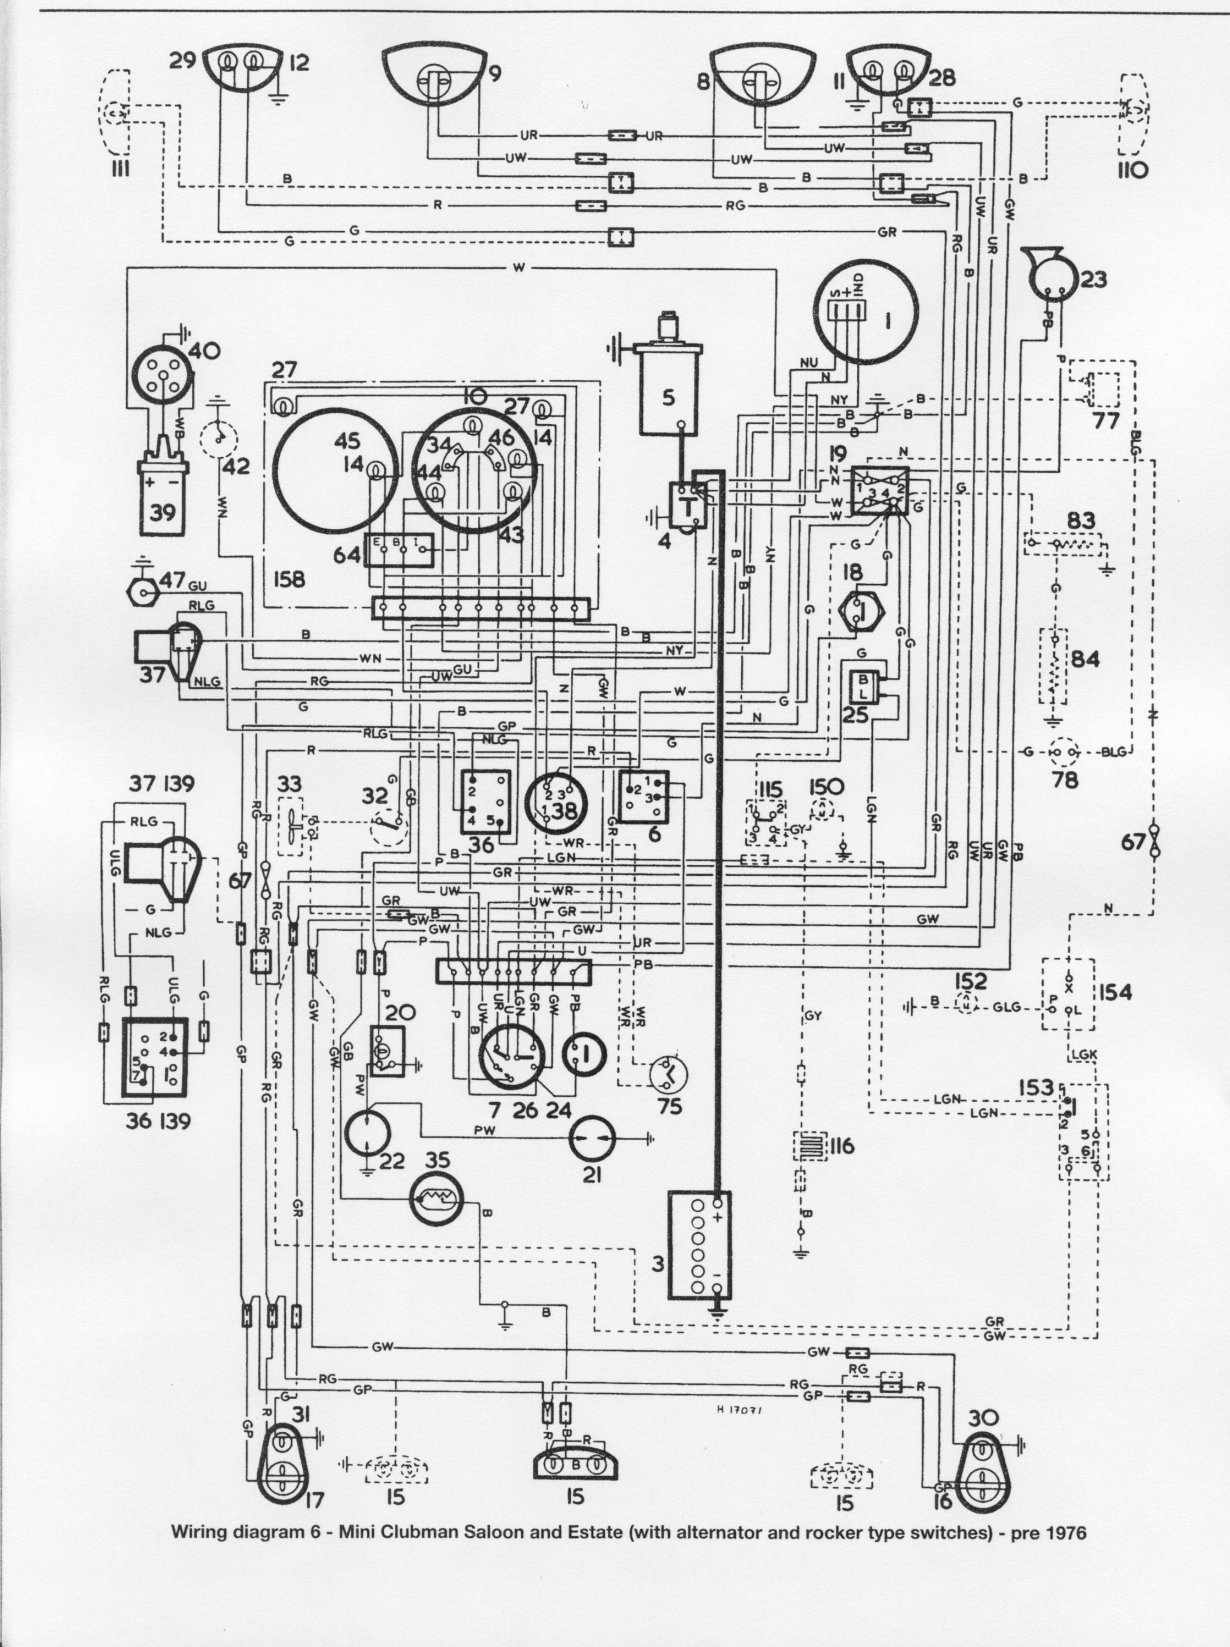 electrical diagram mini cooper today wiring diagram 2003 Mini Cooper Fuse Diagram wiring diagram mini cooper 1968 wiring diagram mini cooper outline electrical diagram mini cooper